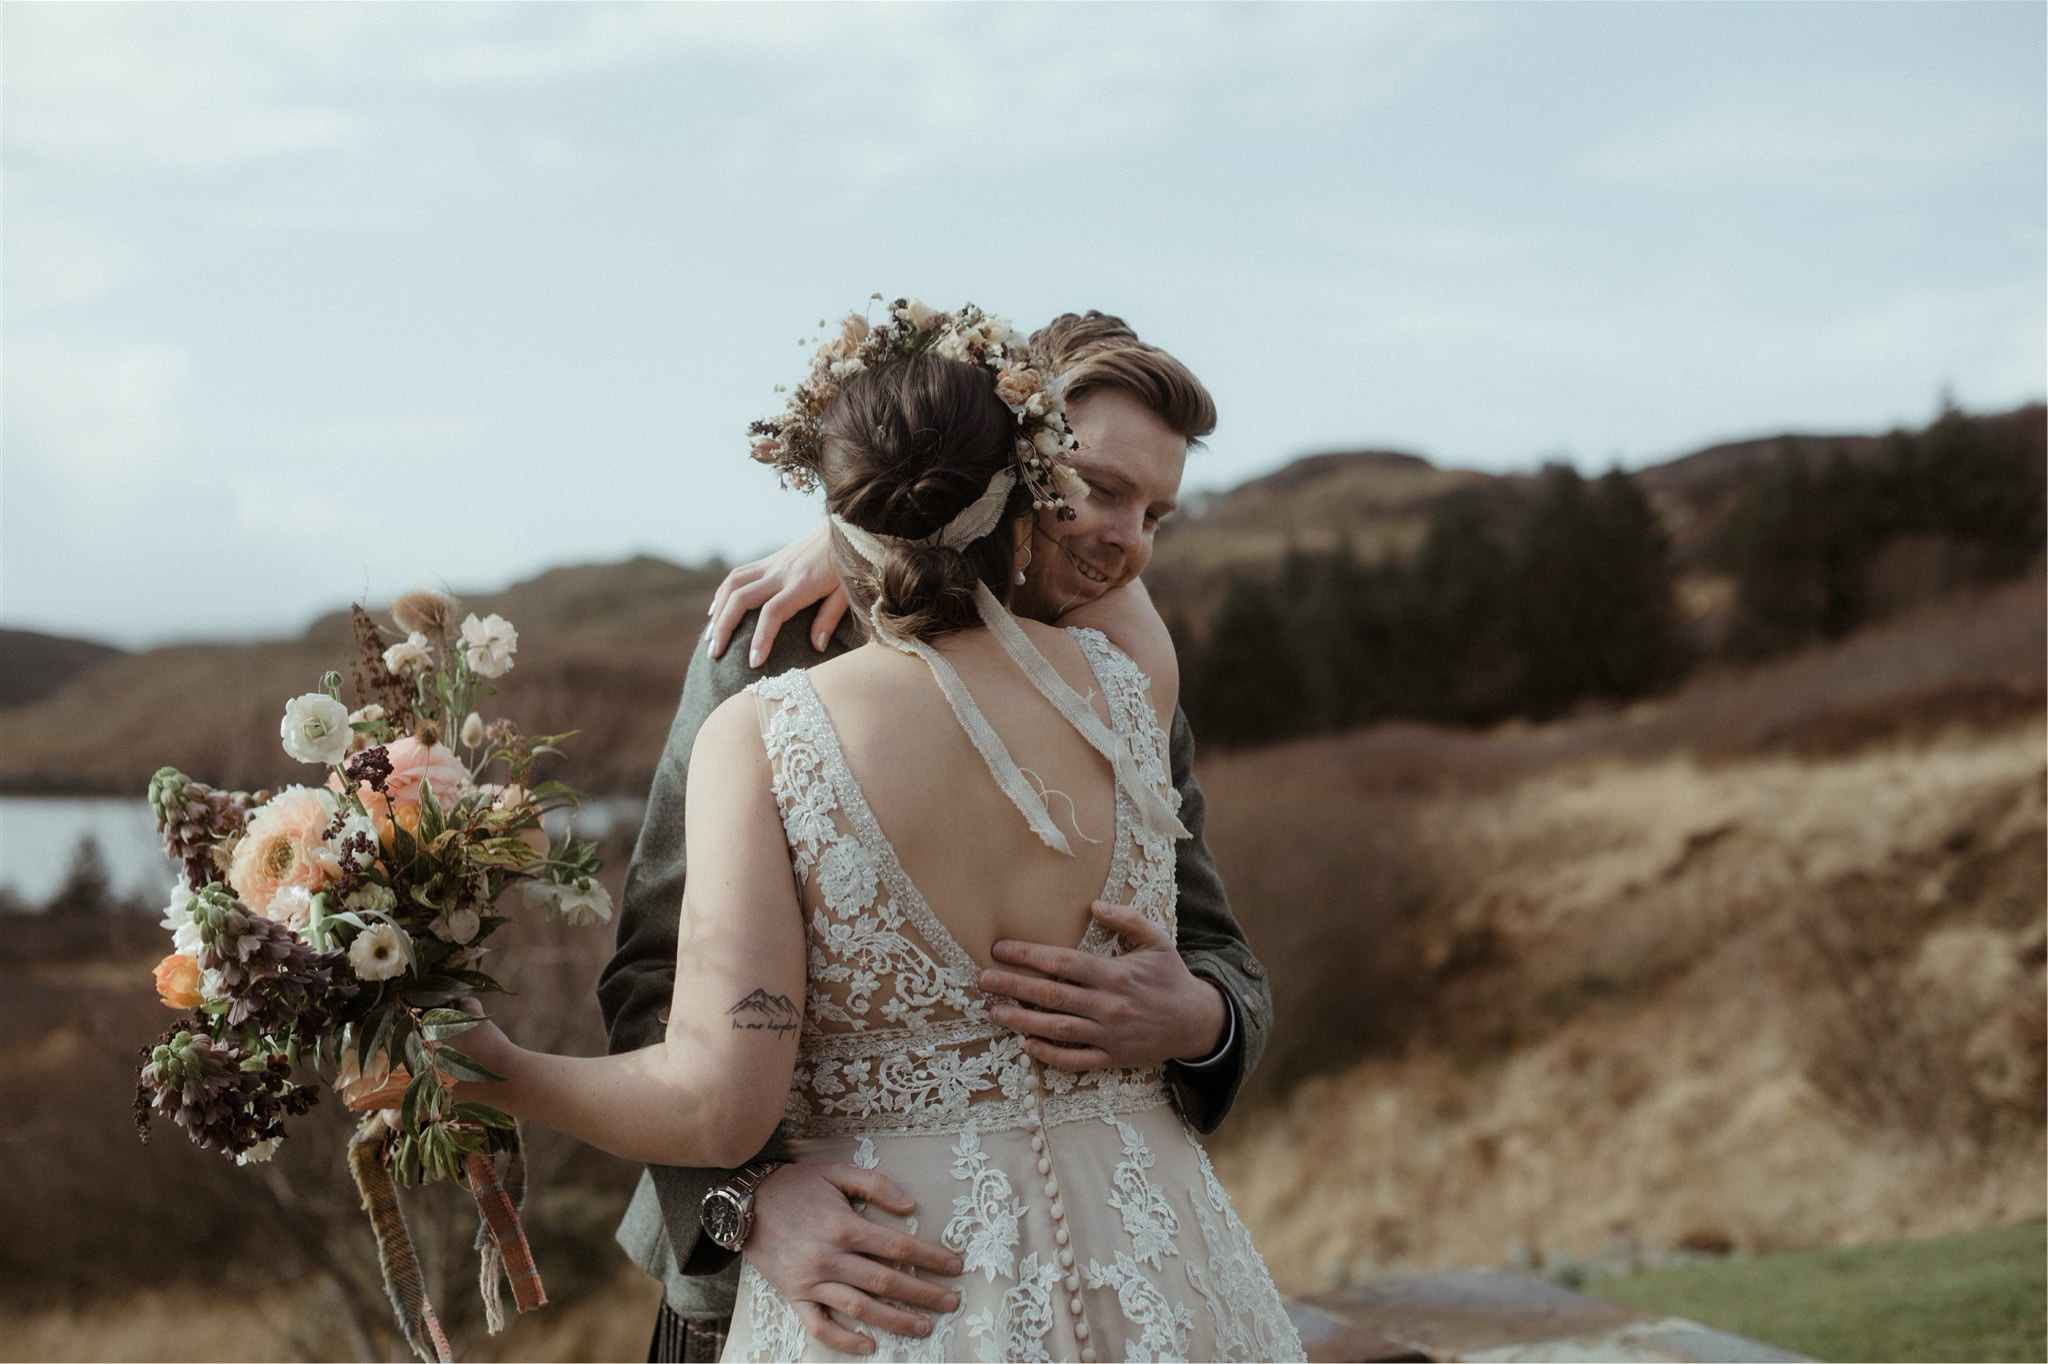 Bride and groom hug during their elopement wedding in Assynt, Scotland